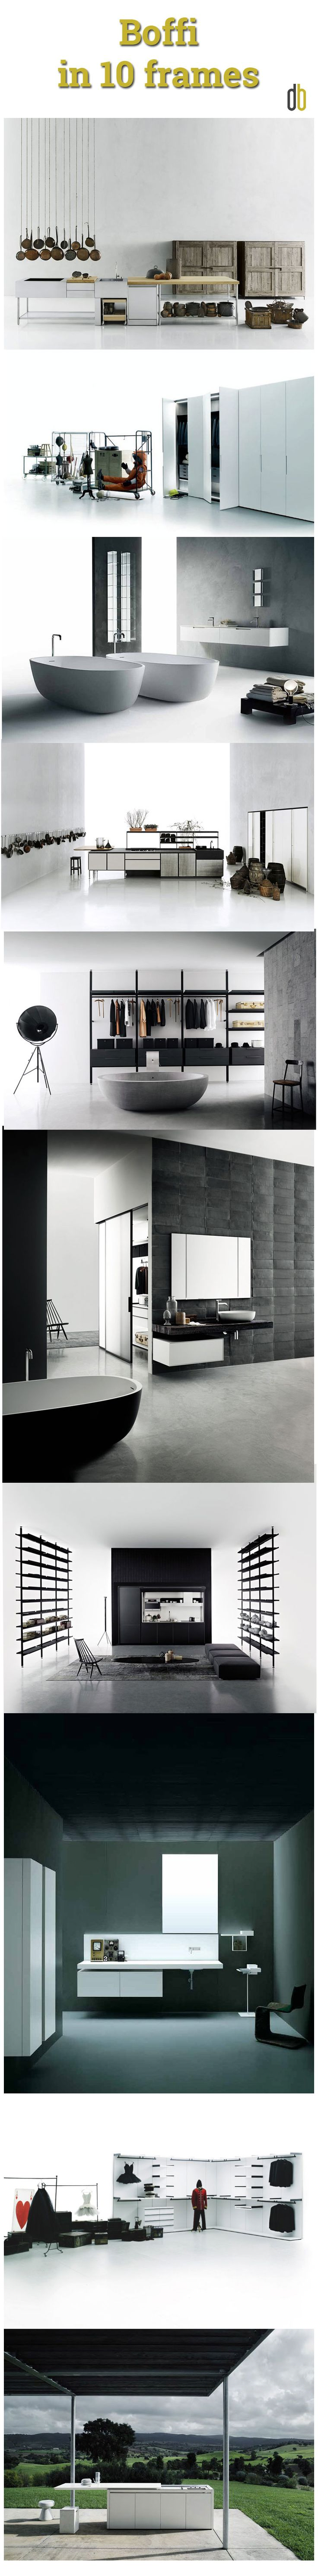 BRANDS: @boffispa  in 10 frames | Boffi started production in 1934 and since the beginning, it has built a reputation for innovative thinking and top quality design. | Learn More on Designbest Magazine --> http://magazine.designbest.com/en/design-culture/brands/boffi-kitchens-and-bathrooms/